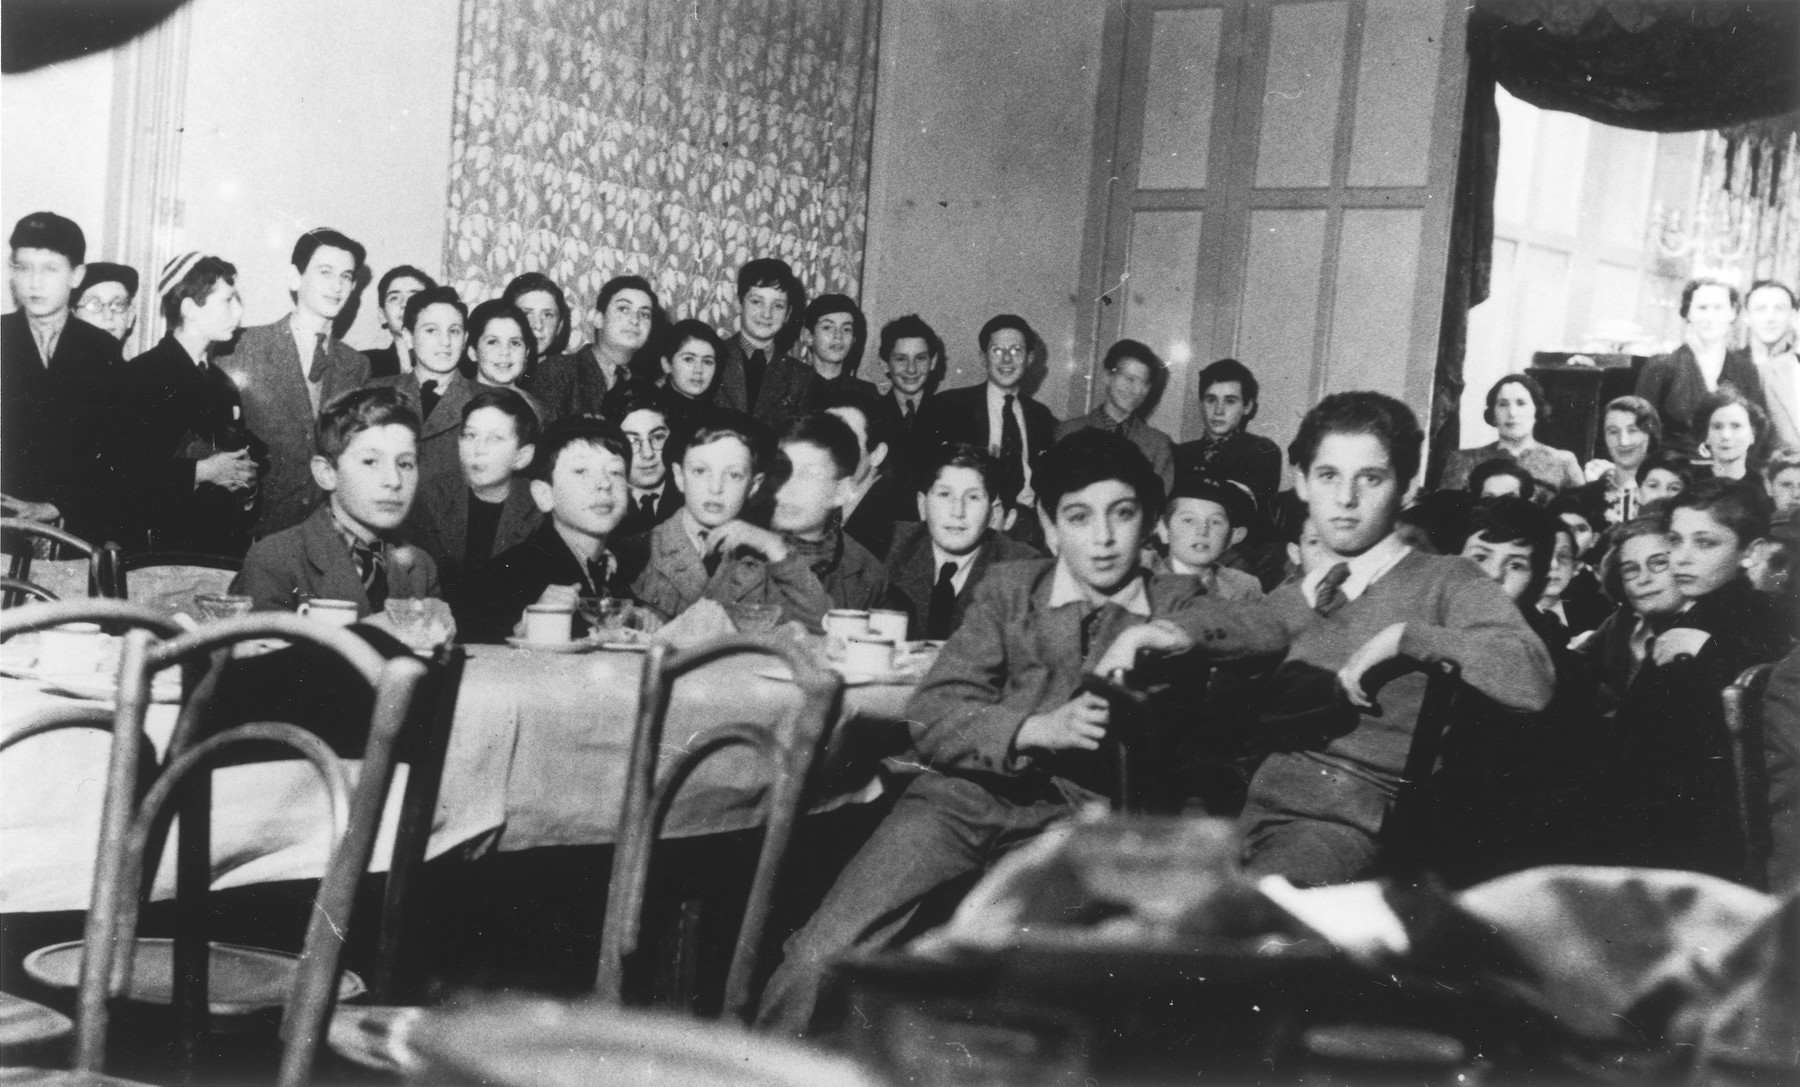 Jewish children from the Rowden Hall School attend a Hannukah party in an overflow hostel on Harold Road.  Among those pictured are Guenther Cahn, his brother Helmuth Cahn (later Harry Curtis), Eric Hamburger, Kurt Berger ( a teacher recruited from the internees in the Kitchener Camp), Mr. and Mrs. Katz and Mrs. Bergel. The third boy from the left sitting behind the table  with his hand  on his chin, is Fred Gottlieb.